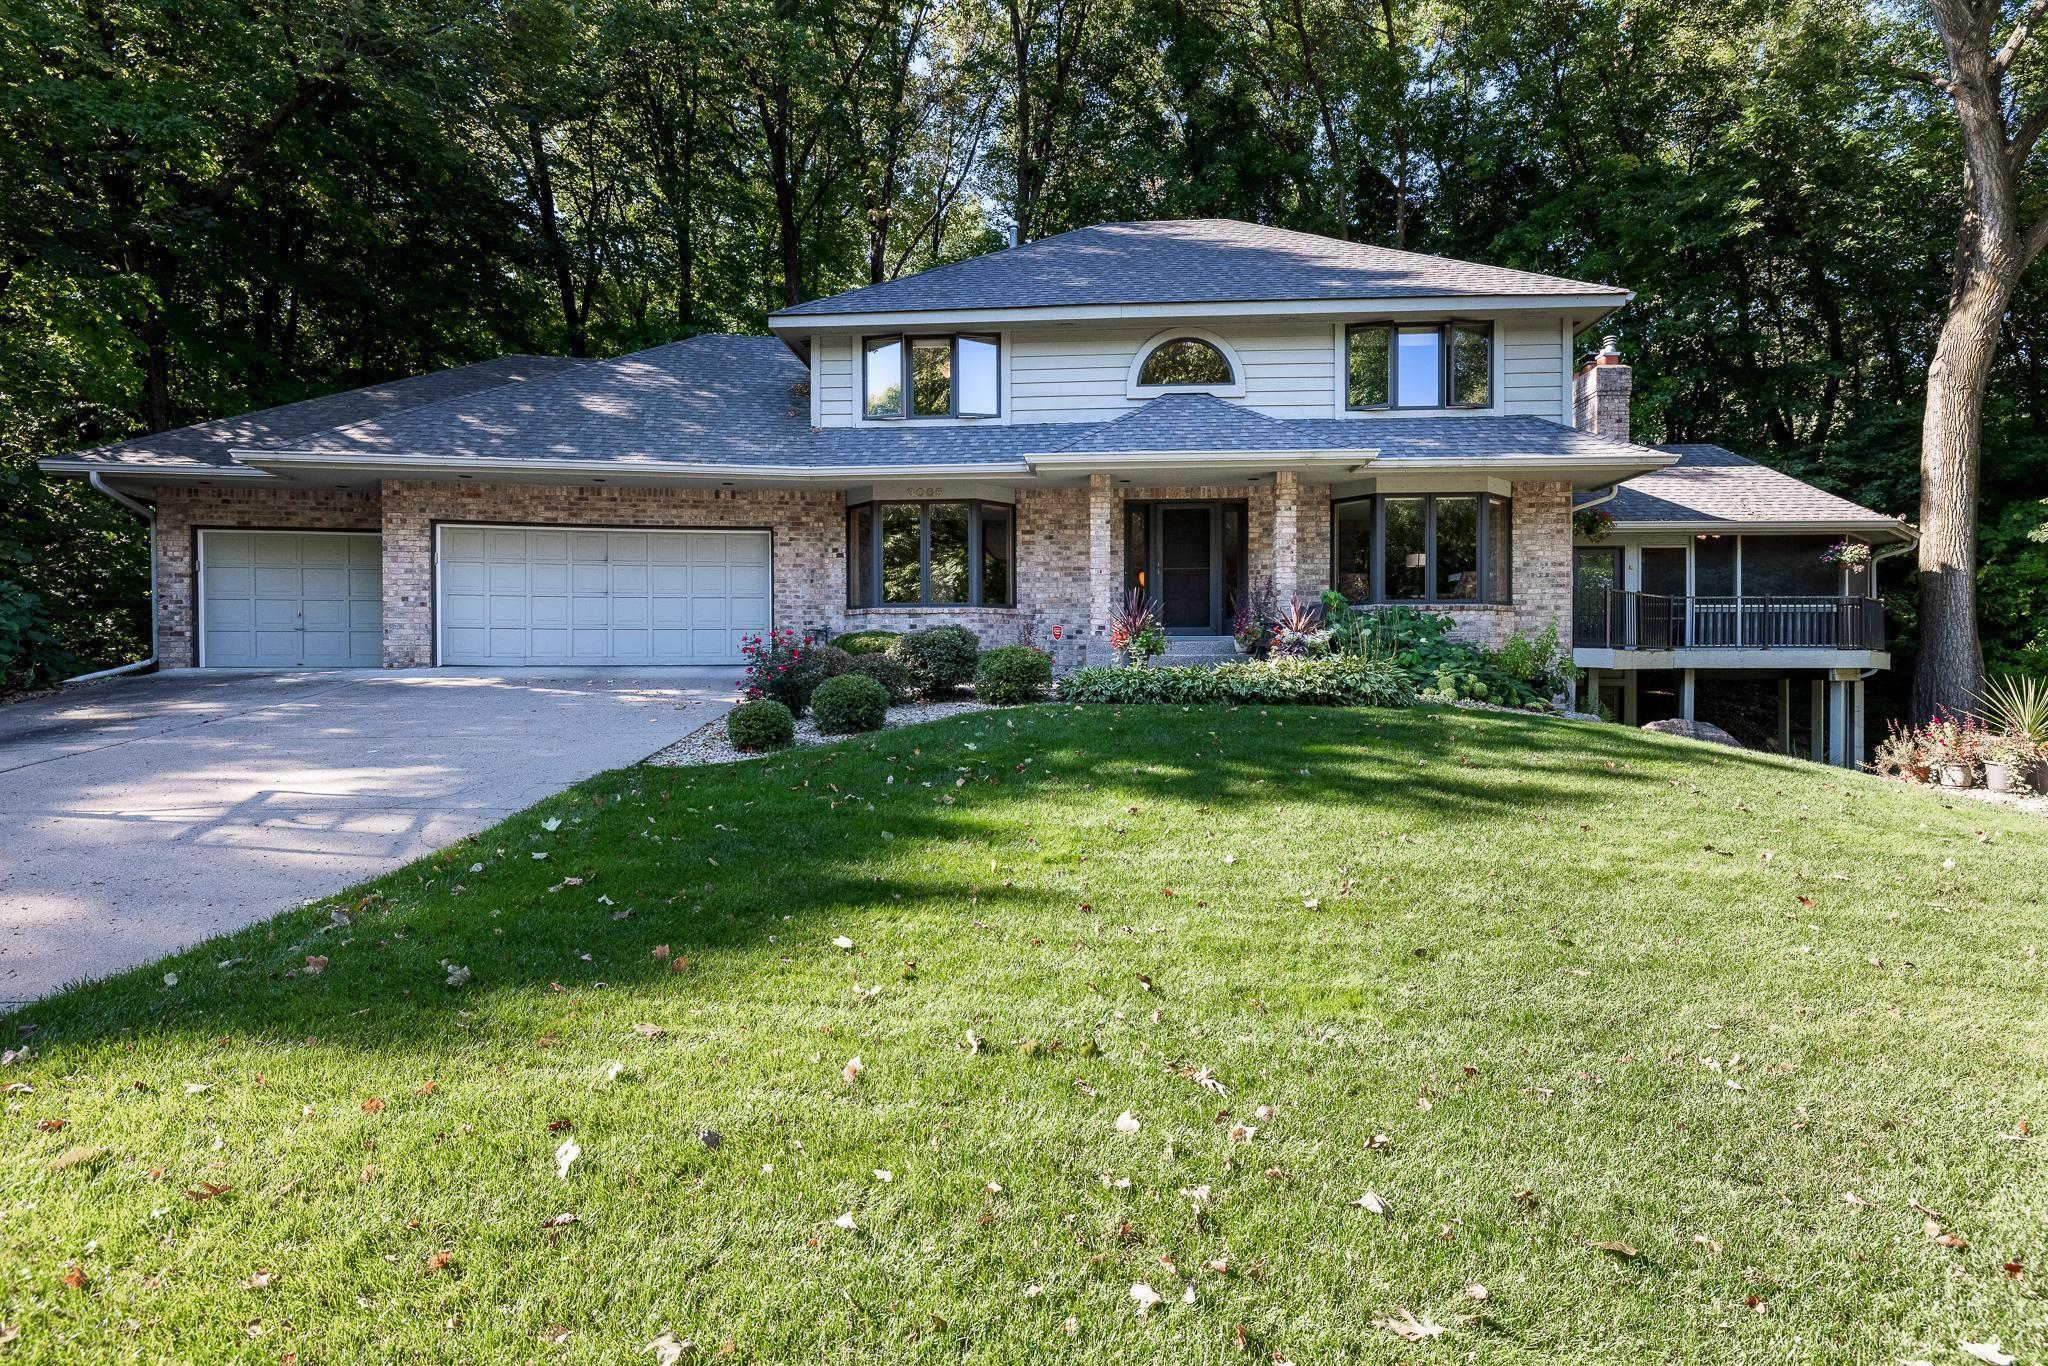 3065 Magnolia Lane, Plymouth, Minnesota 55441, 4 Bedrooms Bedrooms, ,2 BathroomsBathrooms,Residential,For Sale,Magnolia,NST6104536